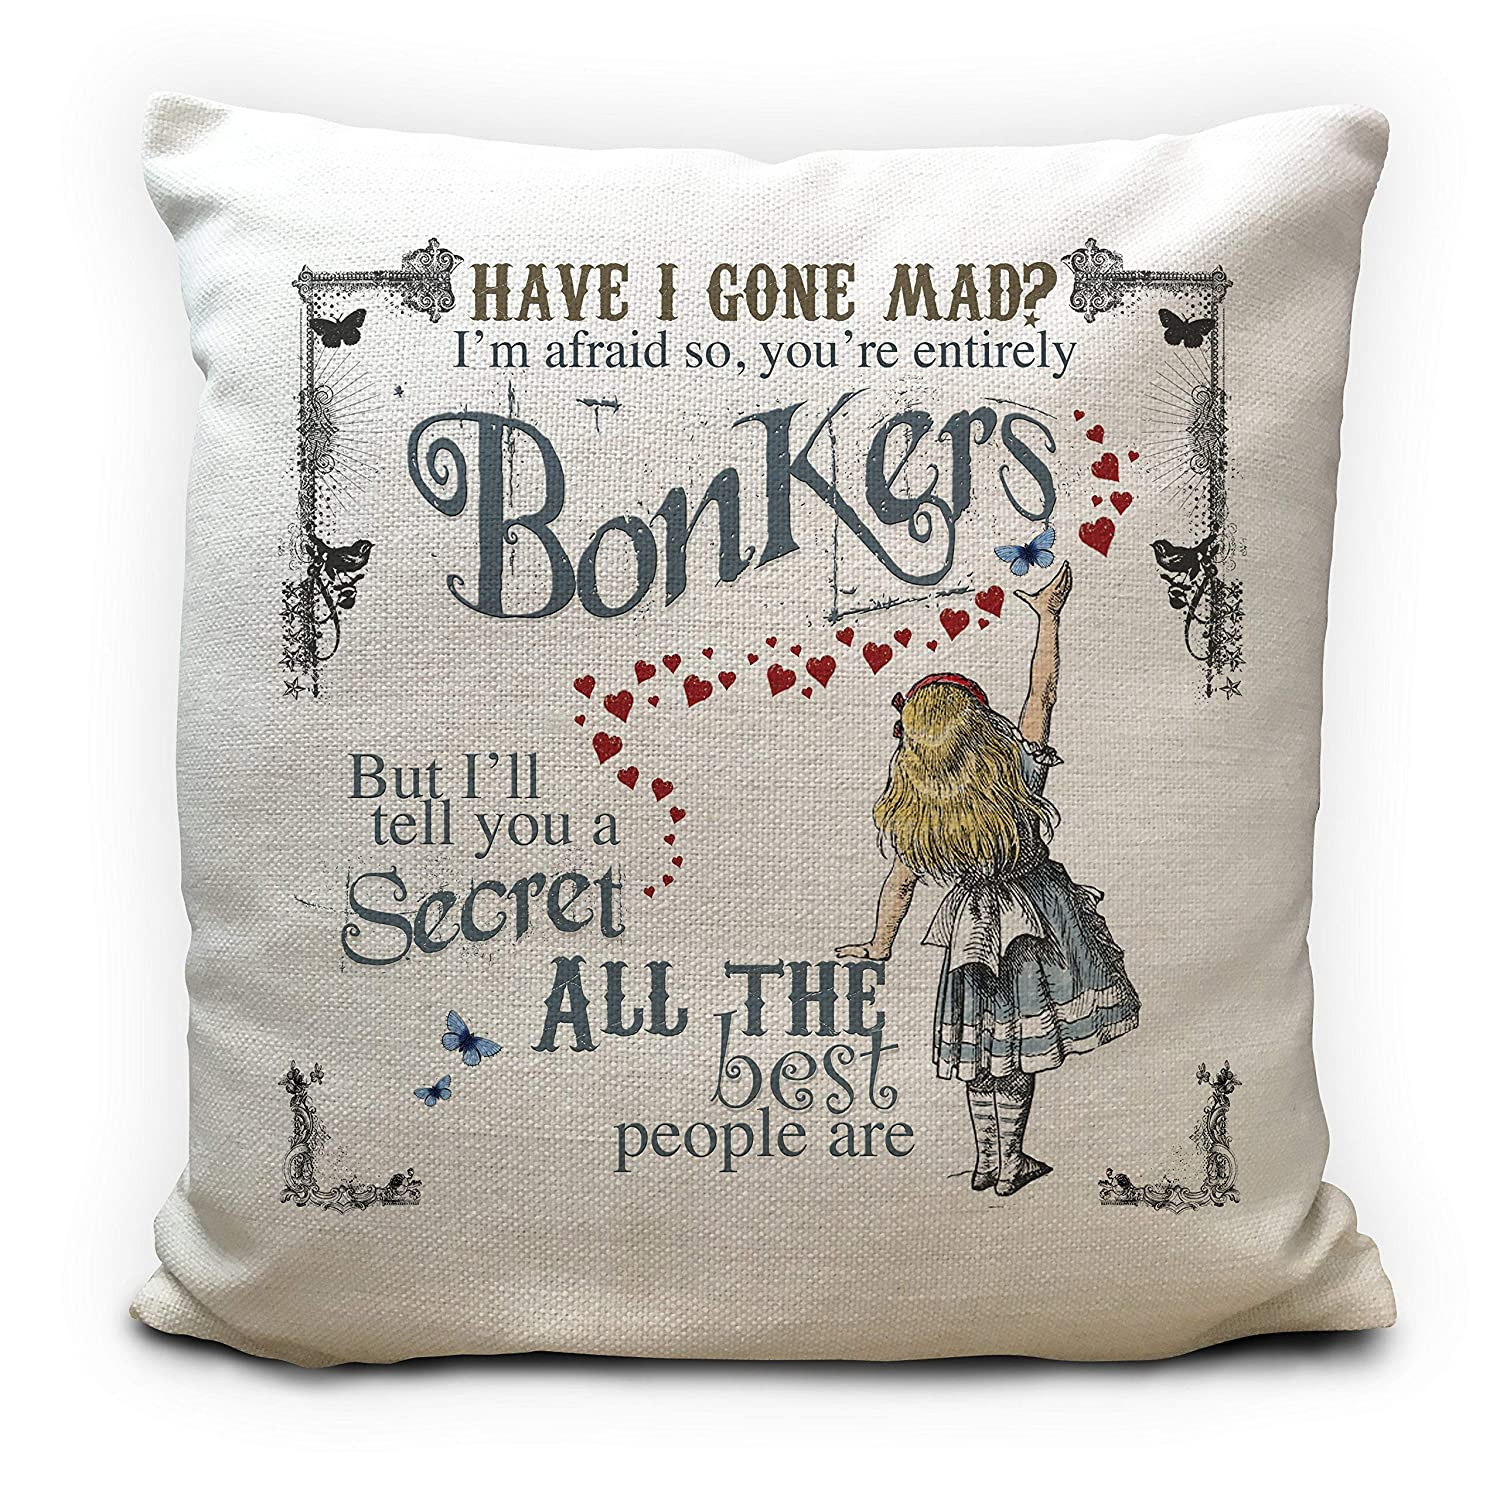 Cushions Alice Wonderland Changed Cushion Covers Pillow Cases Home Decor Or Inner Home Furniture Diy Quatrok Com Br